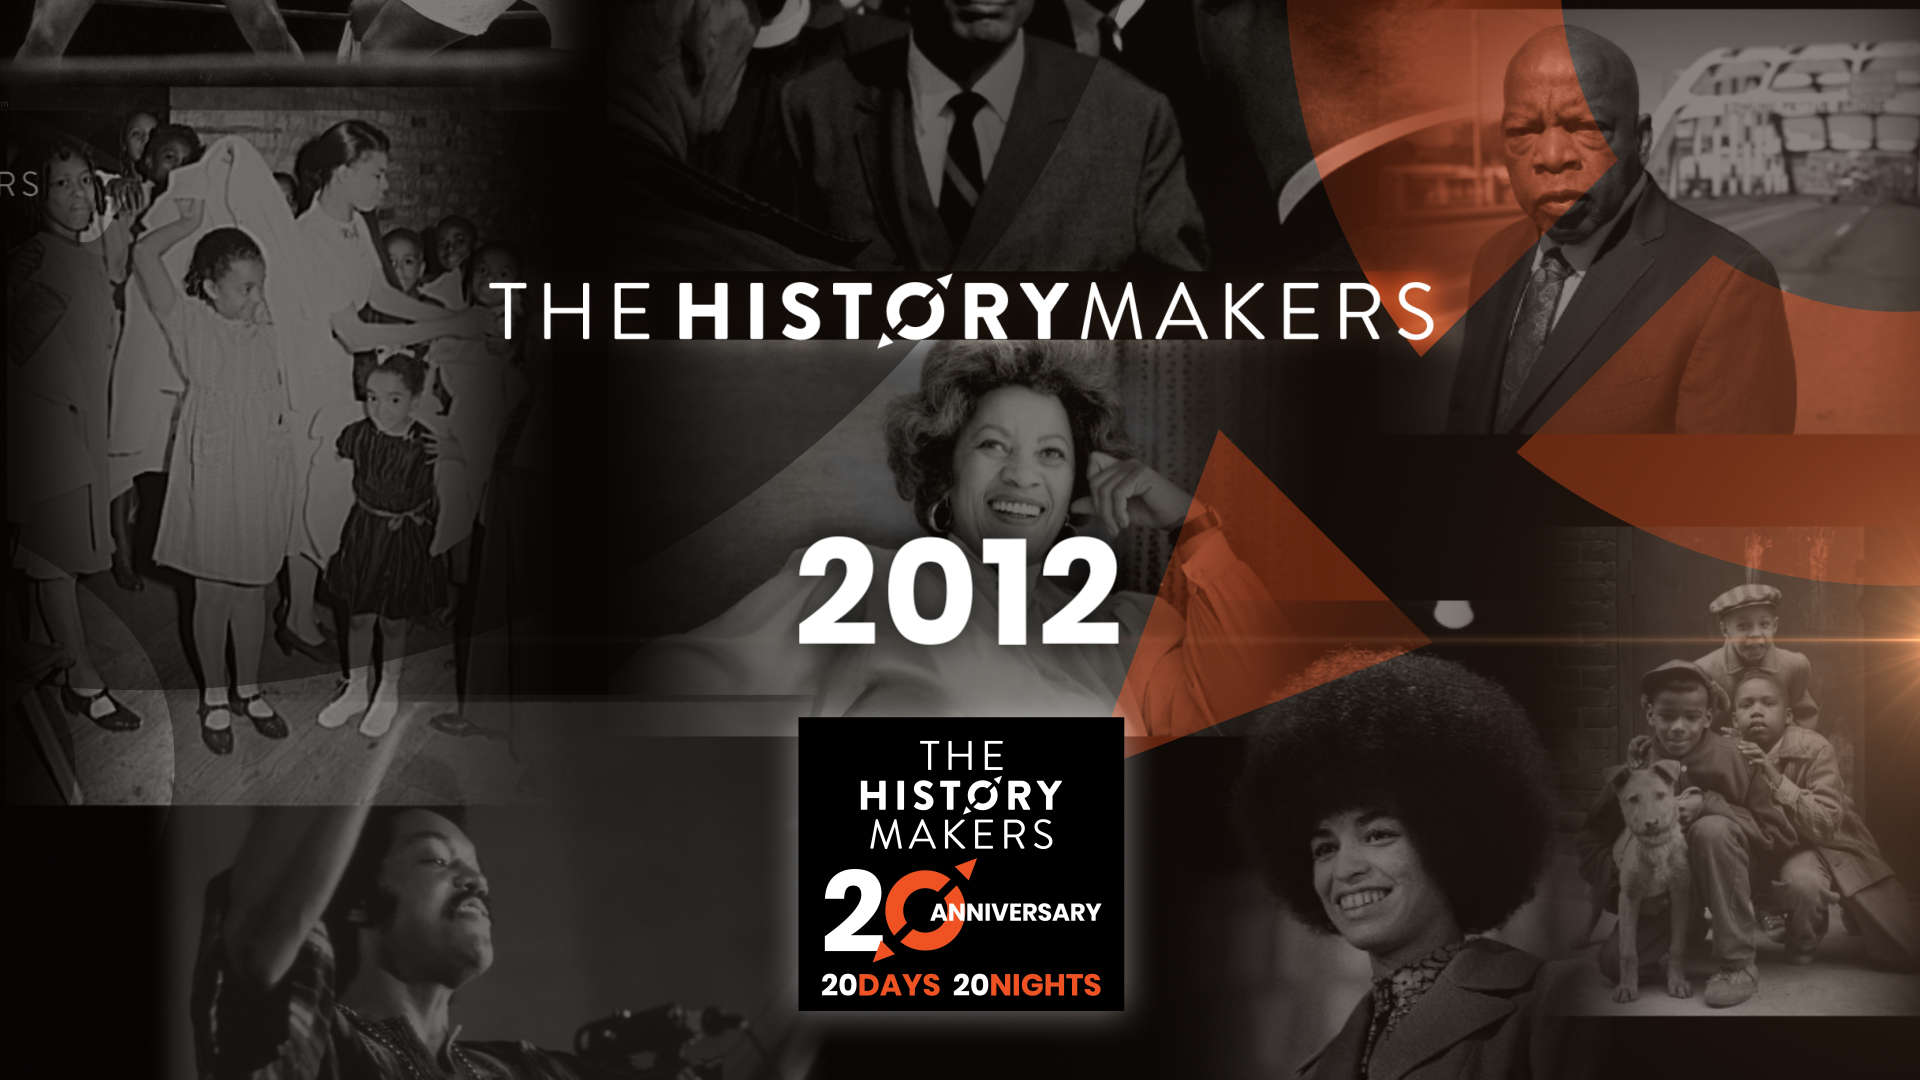 The HistoryMakers 2012 graphic